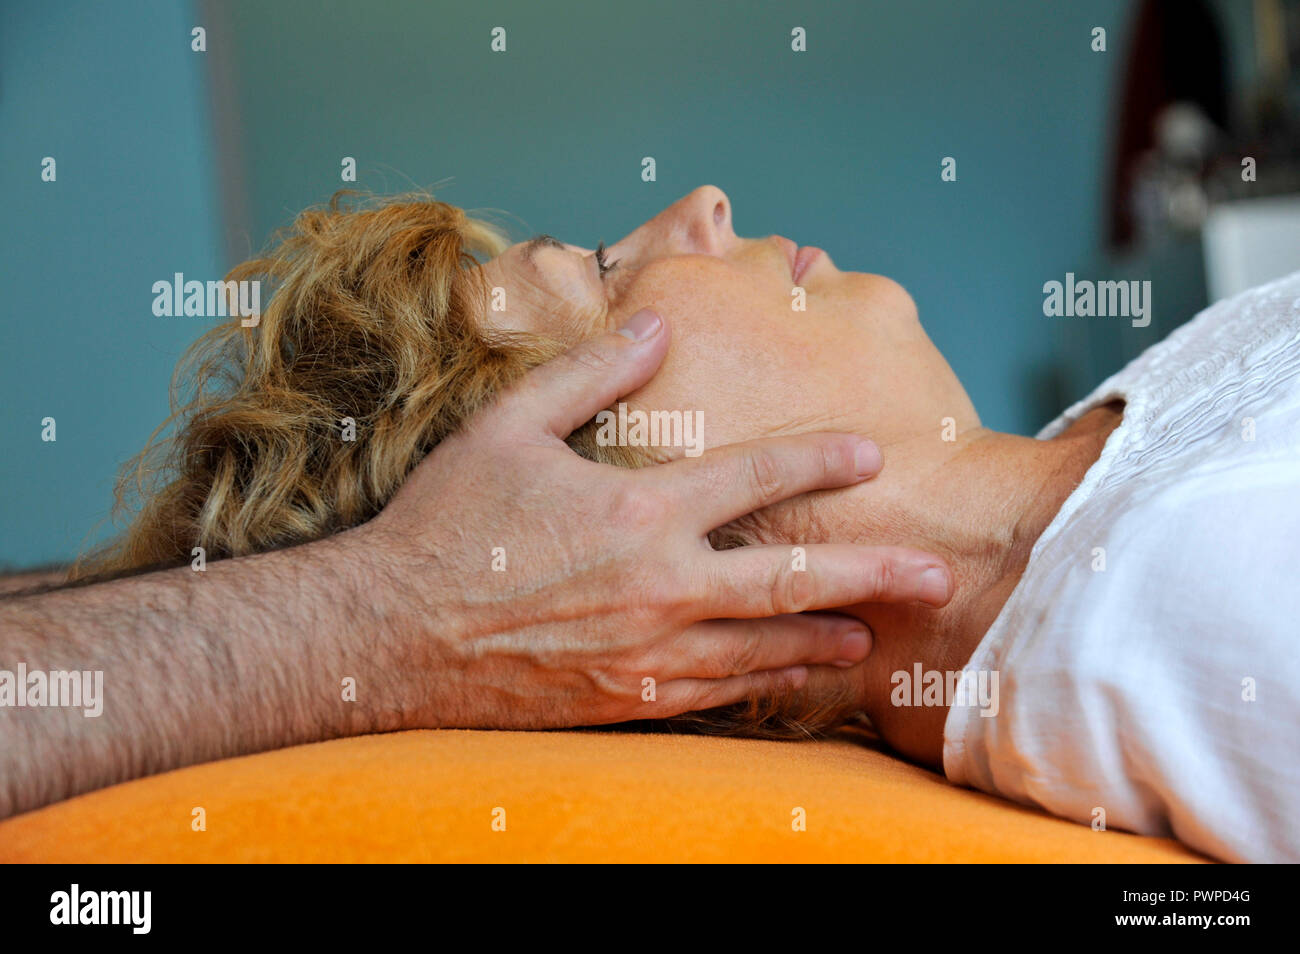 France, person in a osteopath's office, woman getting chiropractic treatment, face massage. - Stock Image